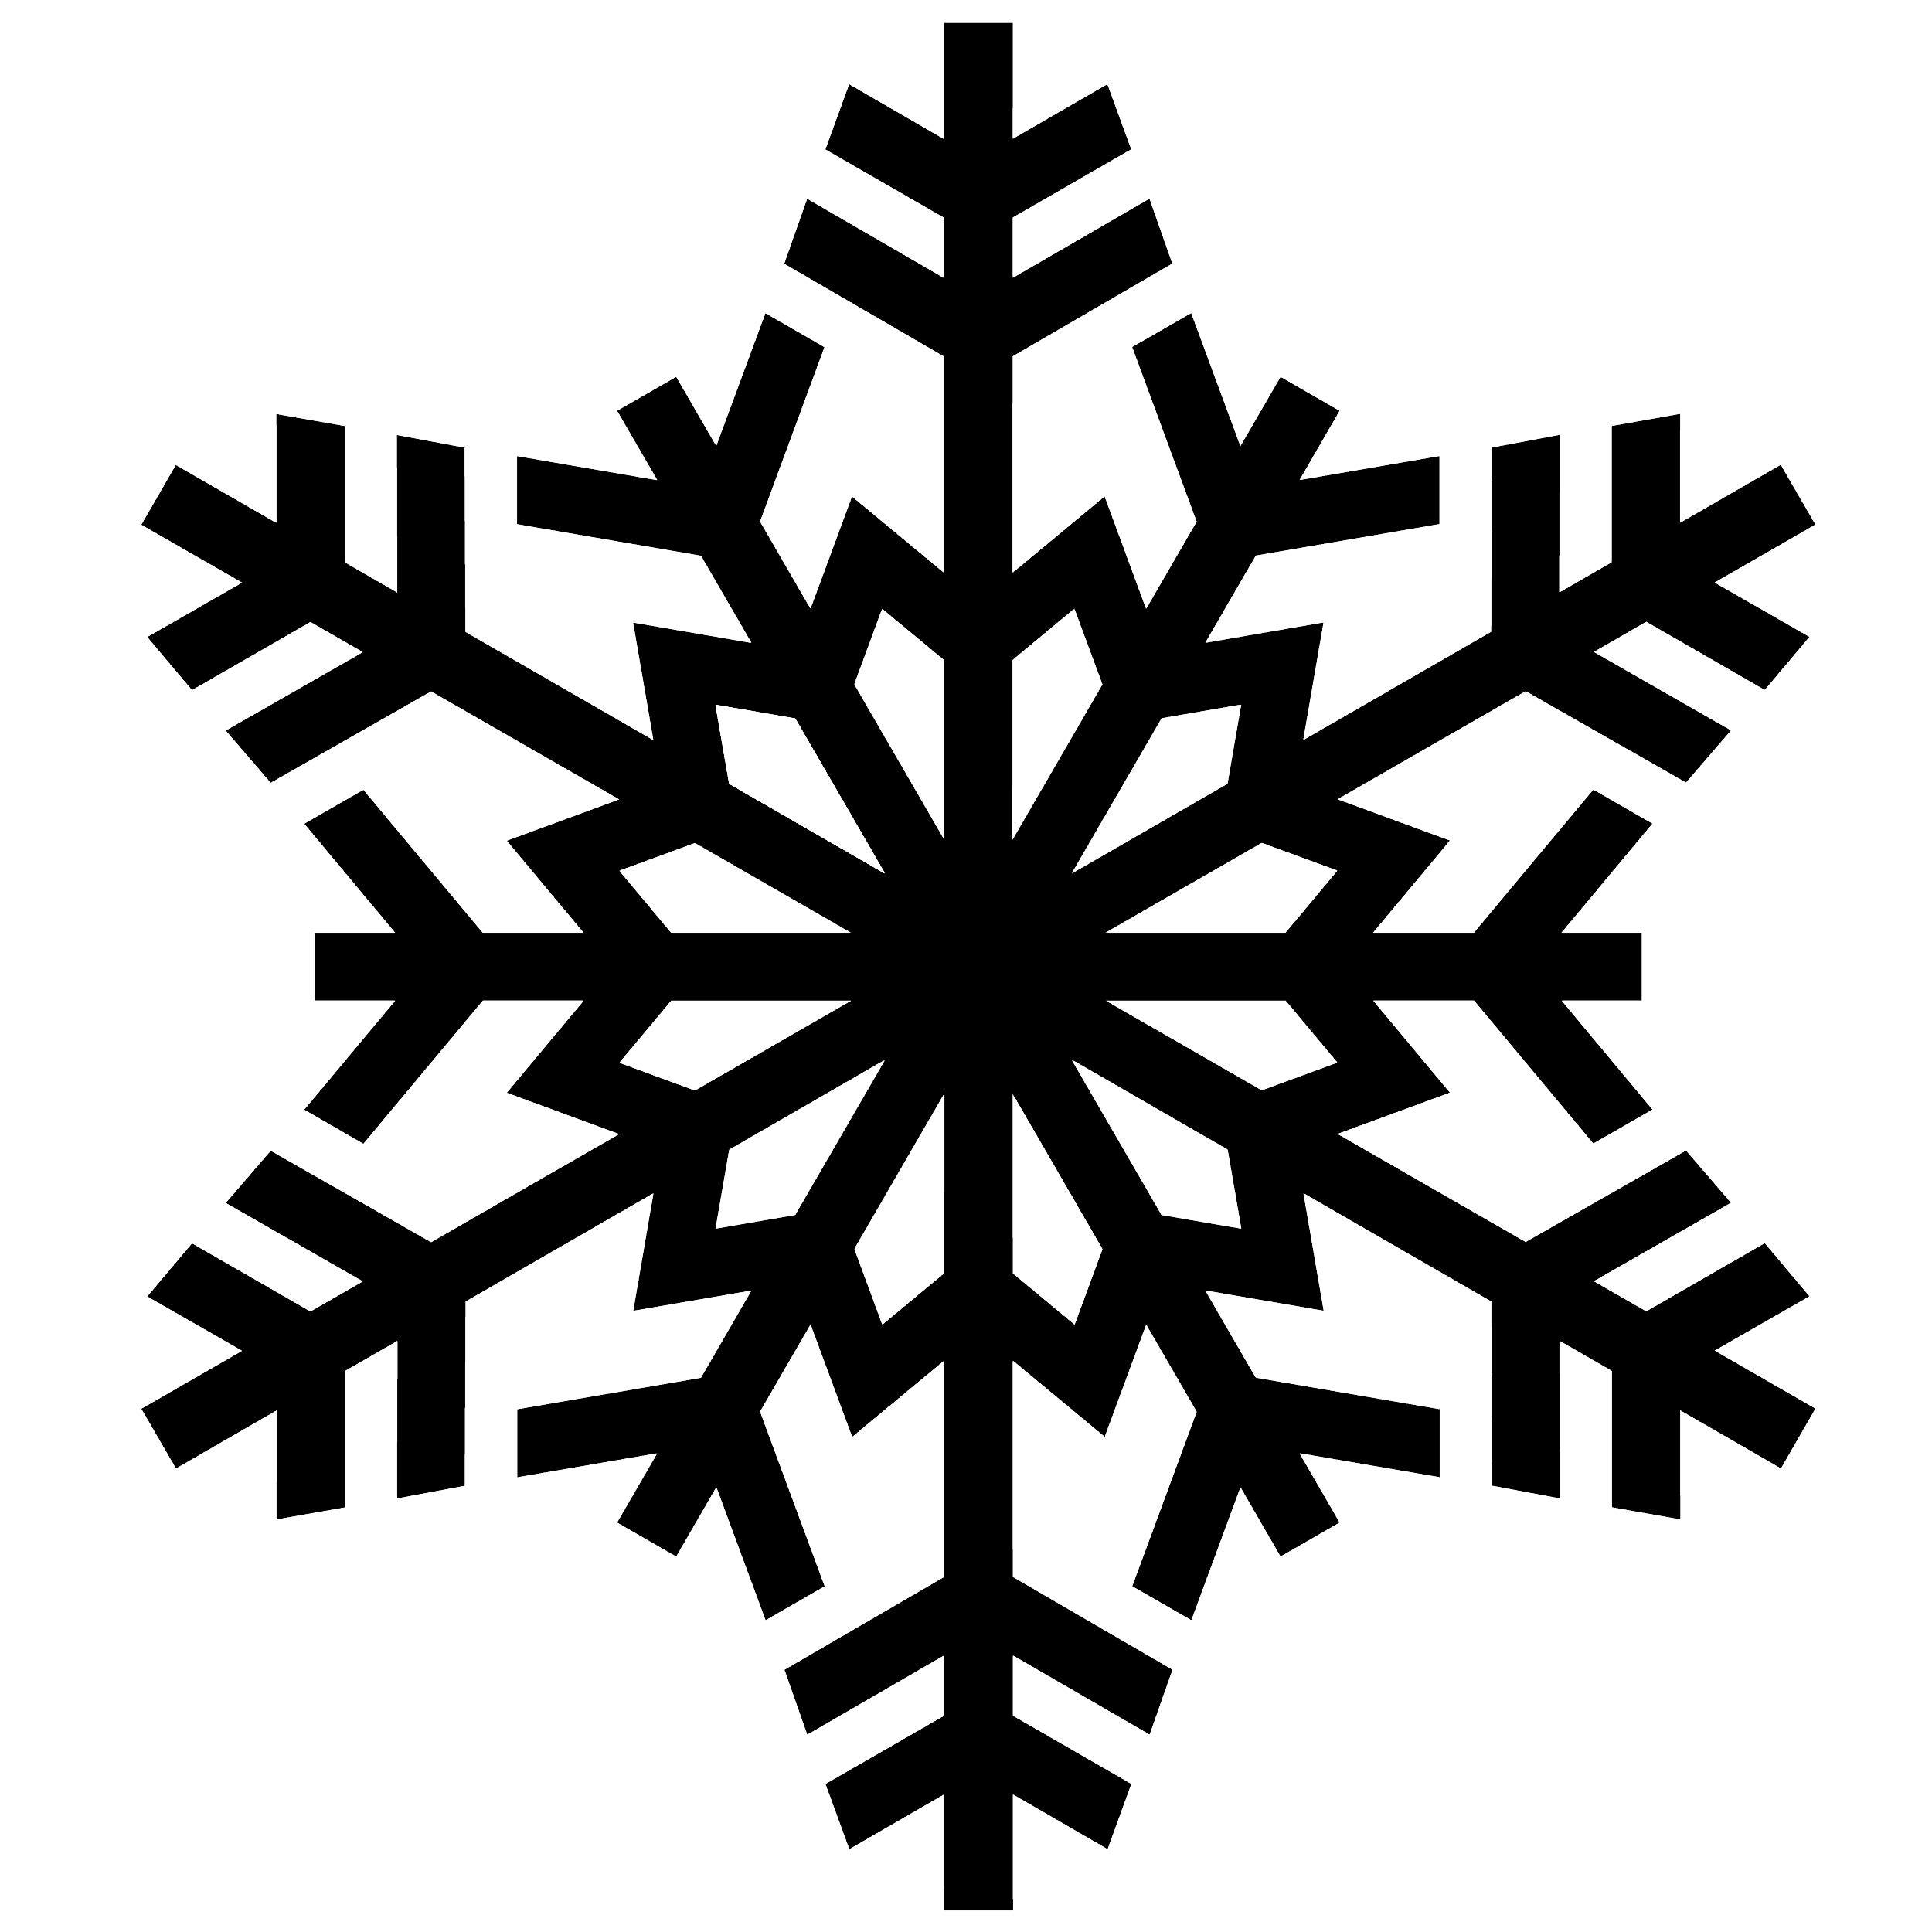 Ice and snowflake clipart banner black and white download Snowflake PNG image banner black and white download